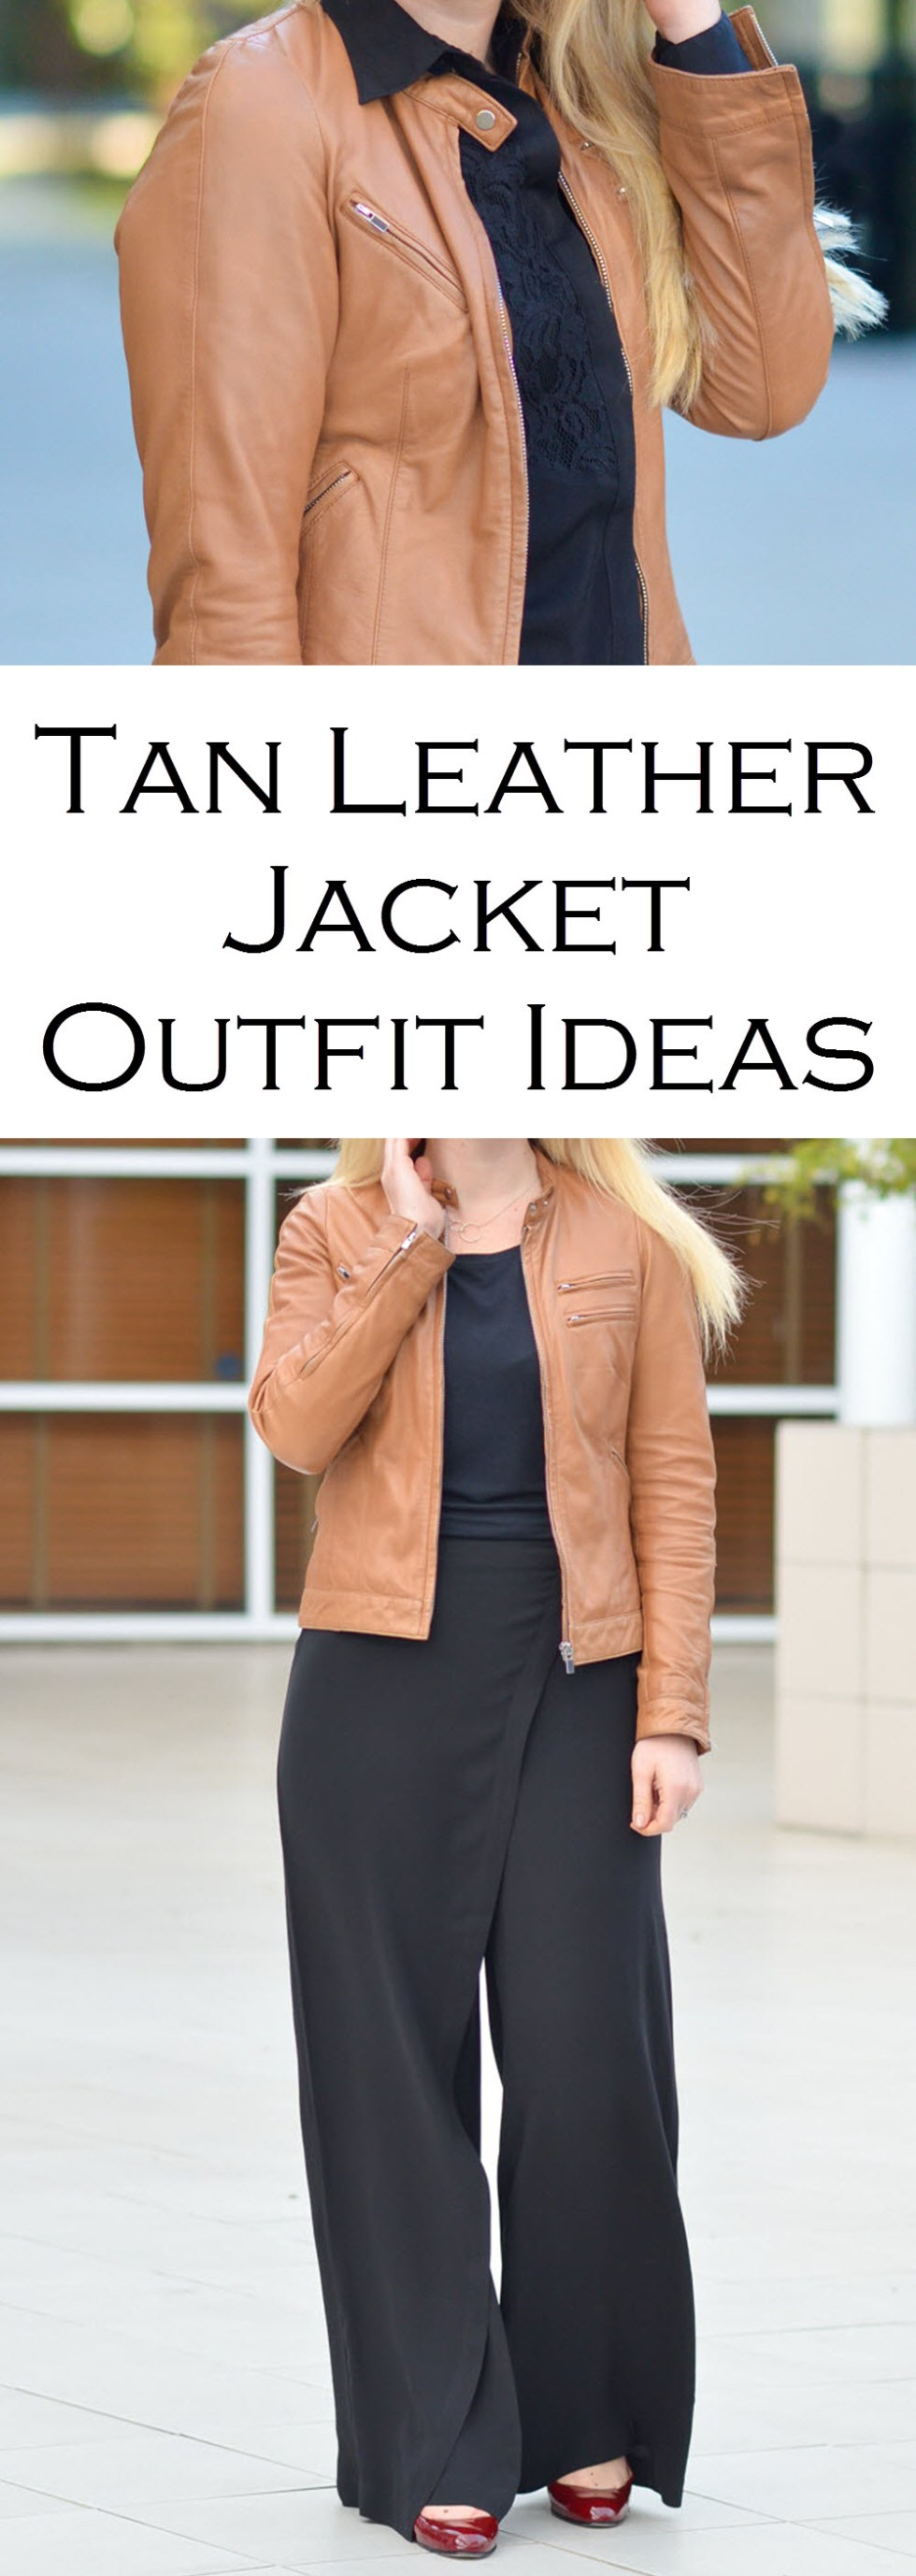 How to Wear Tan Leather Jacket Outfit Ideas. From casual denim to pantsuits, brown leather jackets are the perfect piece of outerwear.